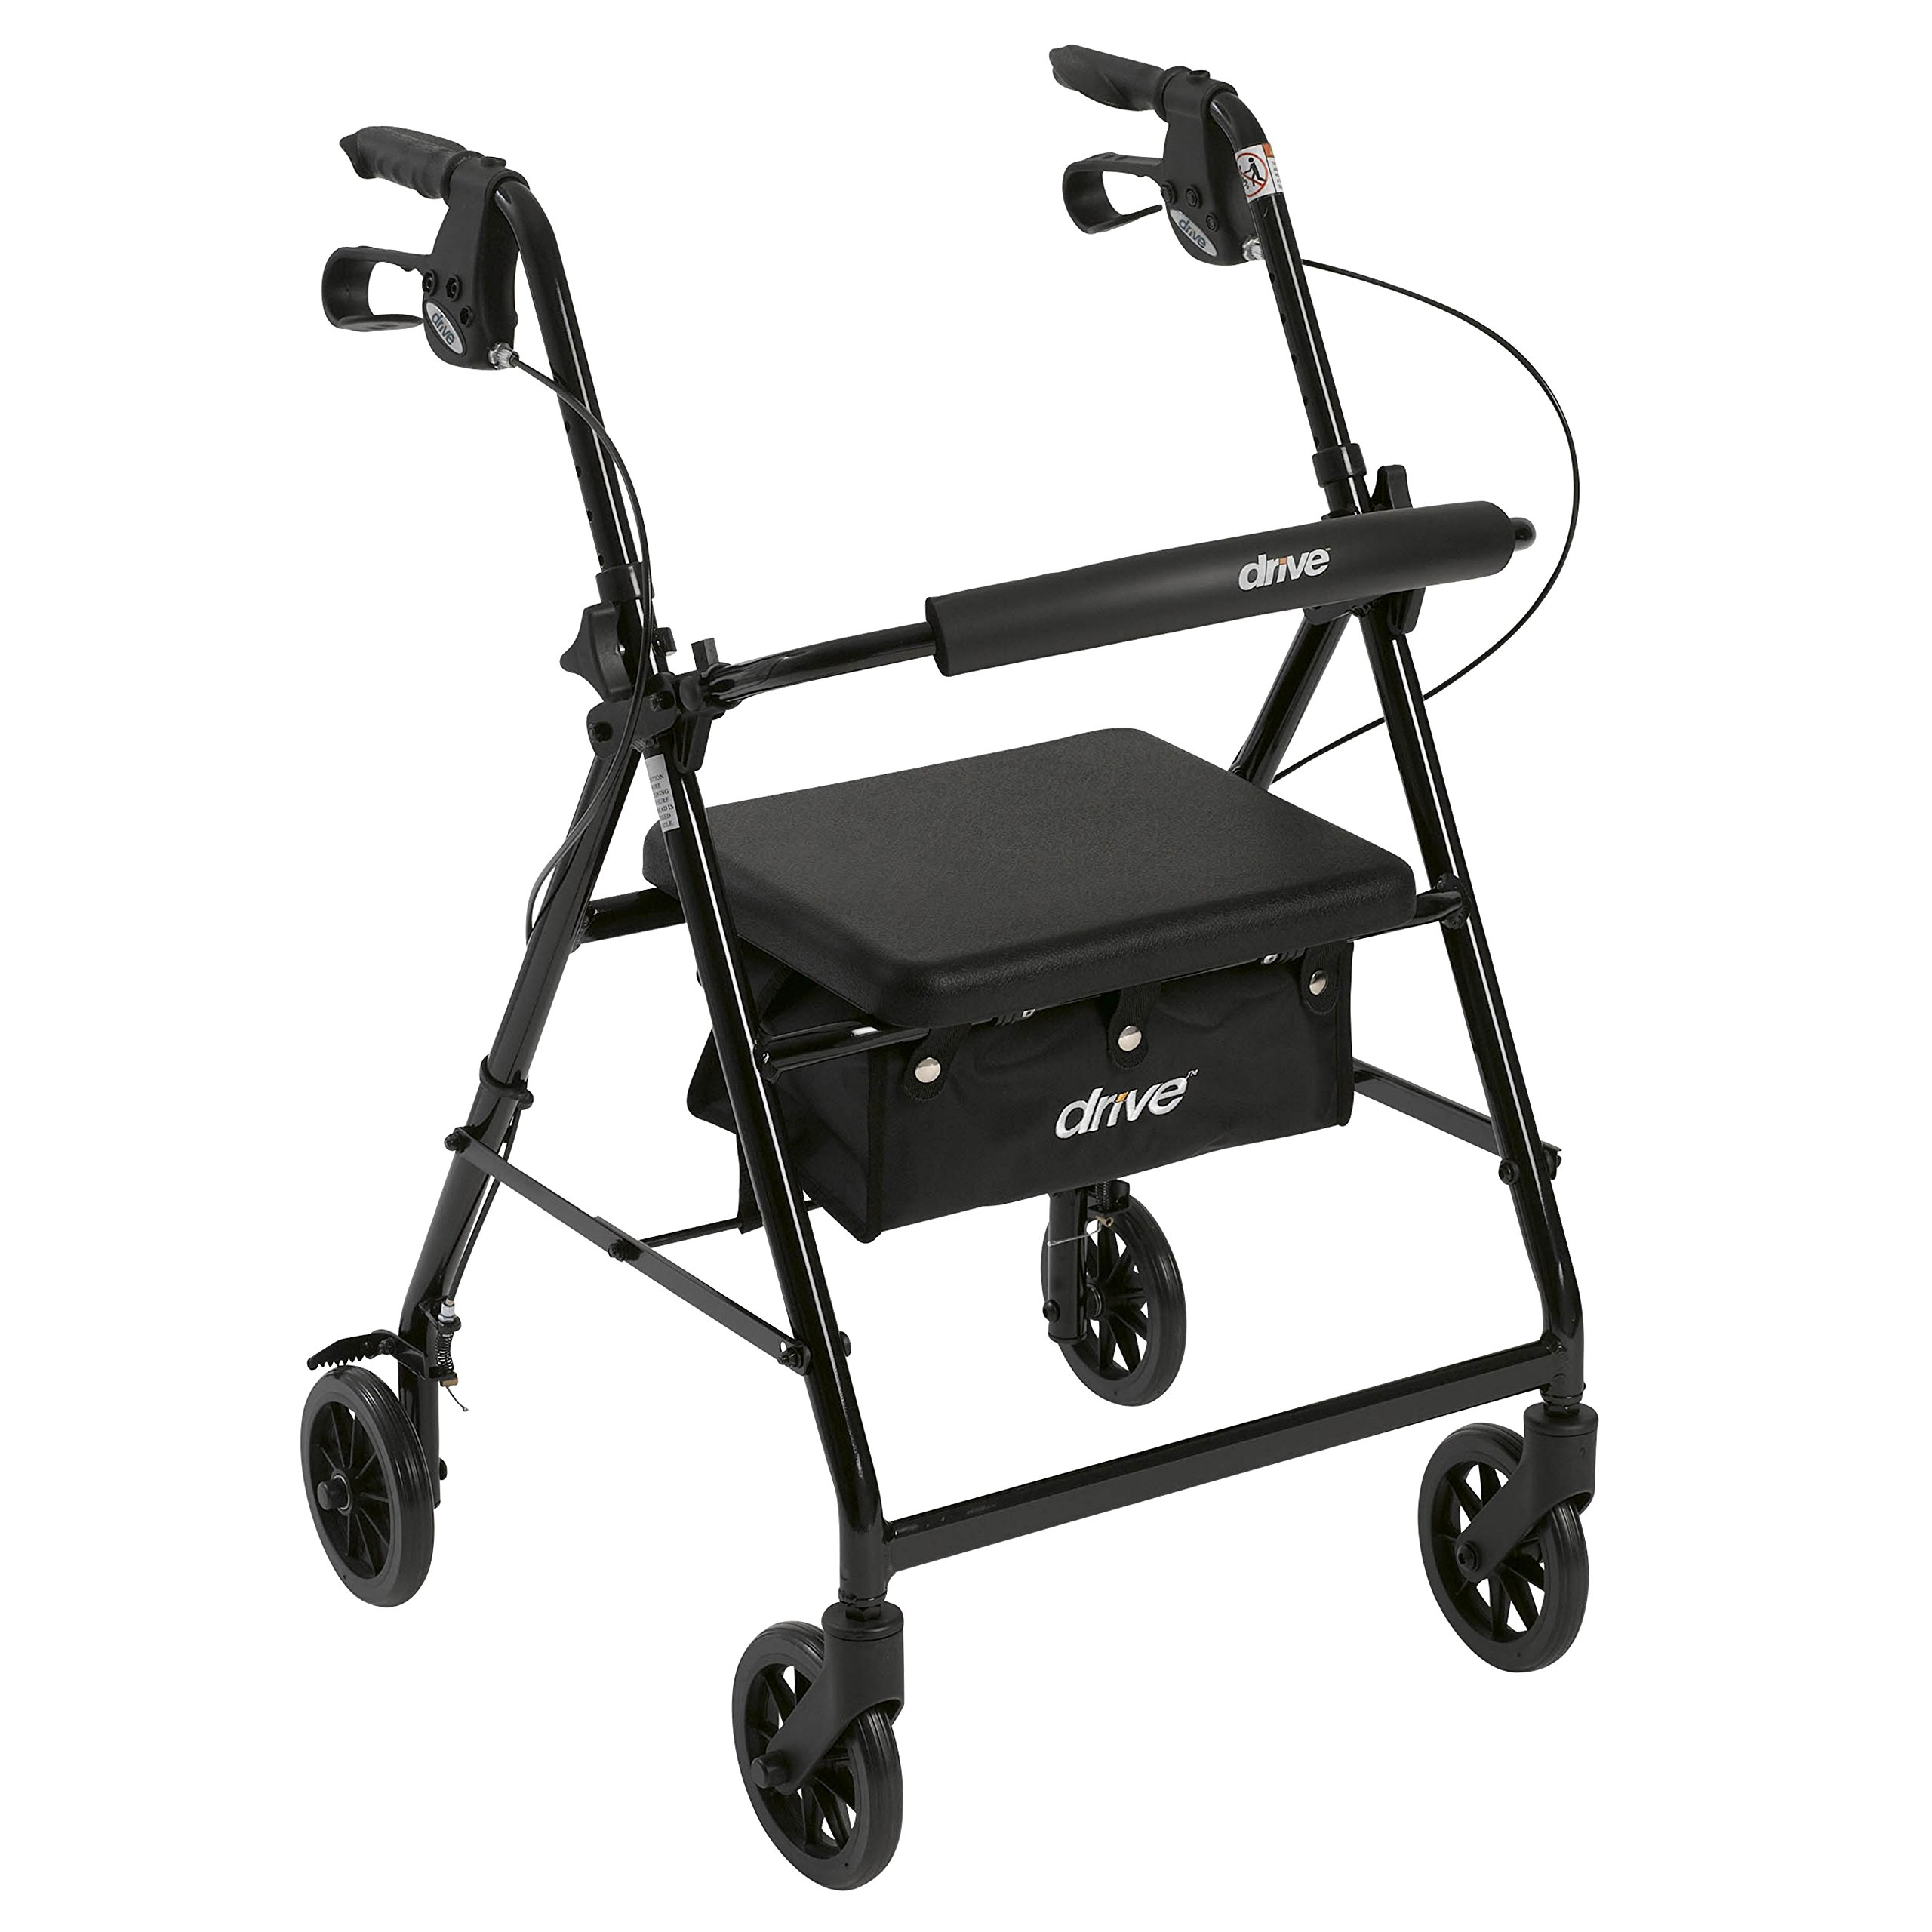 Drive Medical Aluminum Rollator Walker Fold Up and Removable Back Support, Padded Seat, 6'' Wheels, Black by Drive Medical